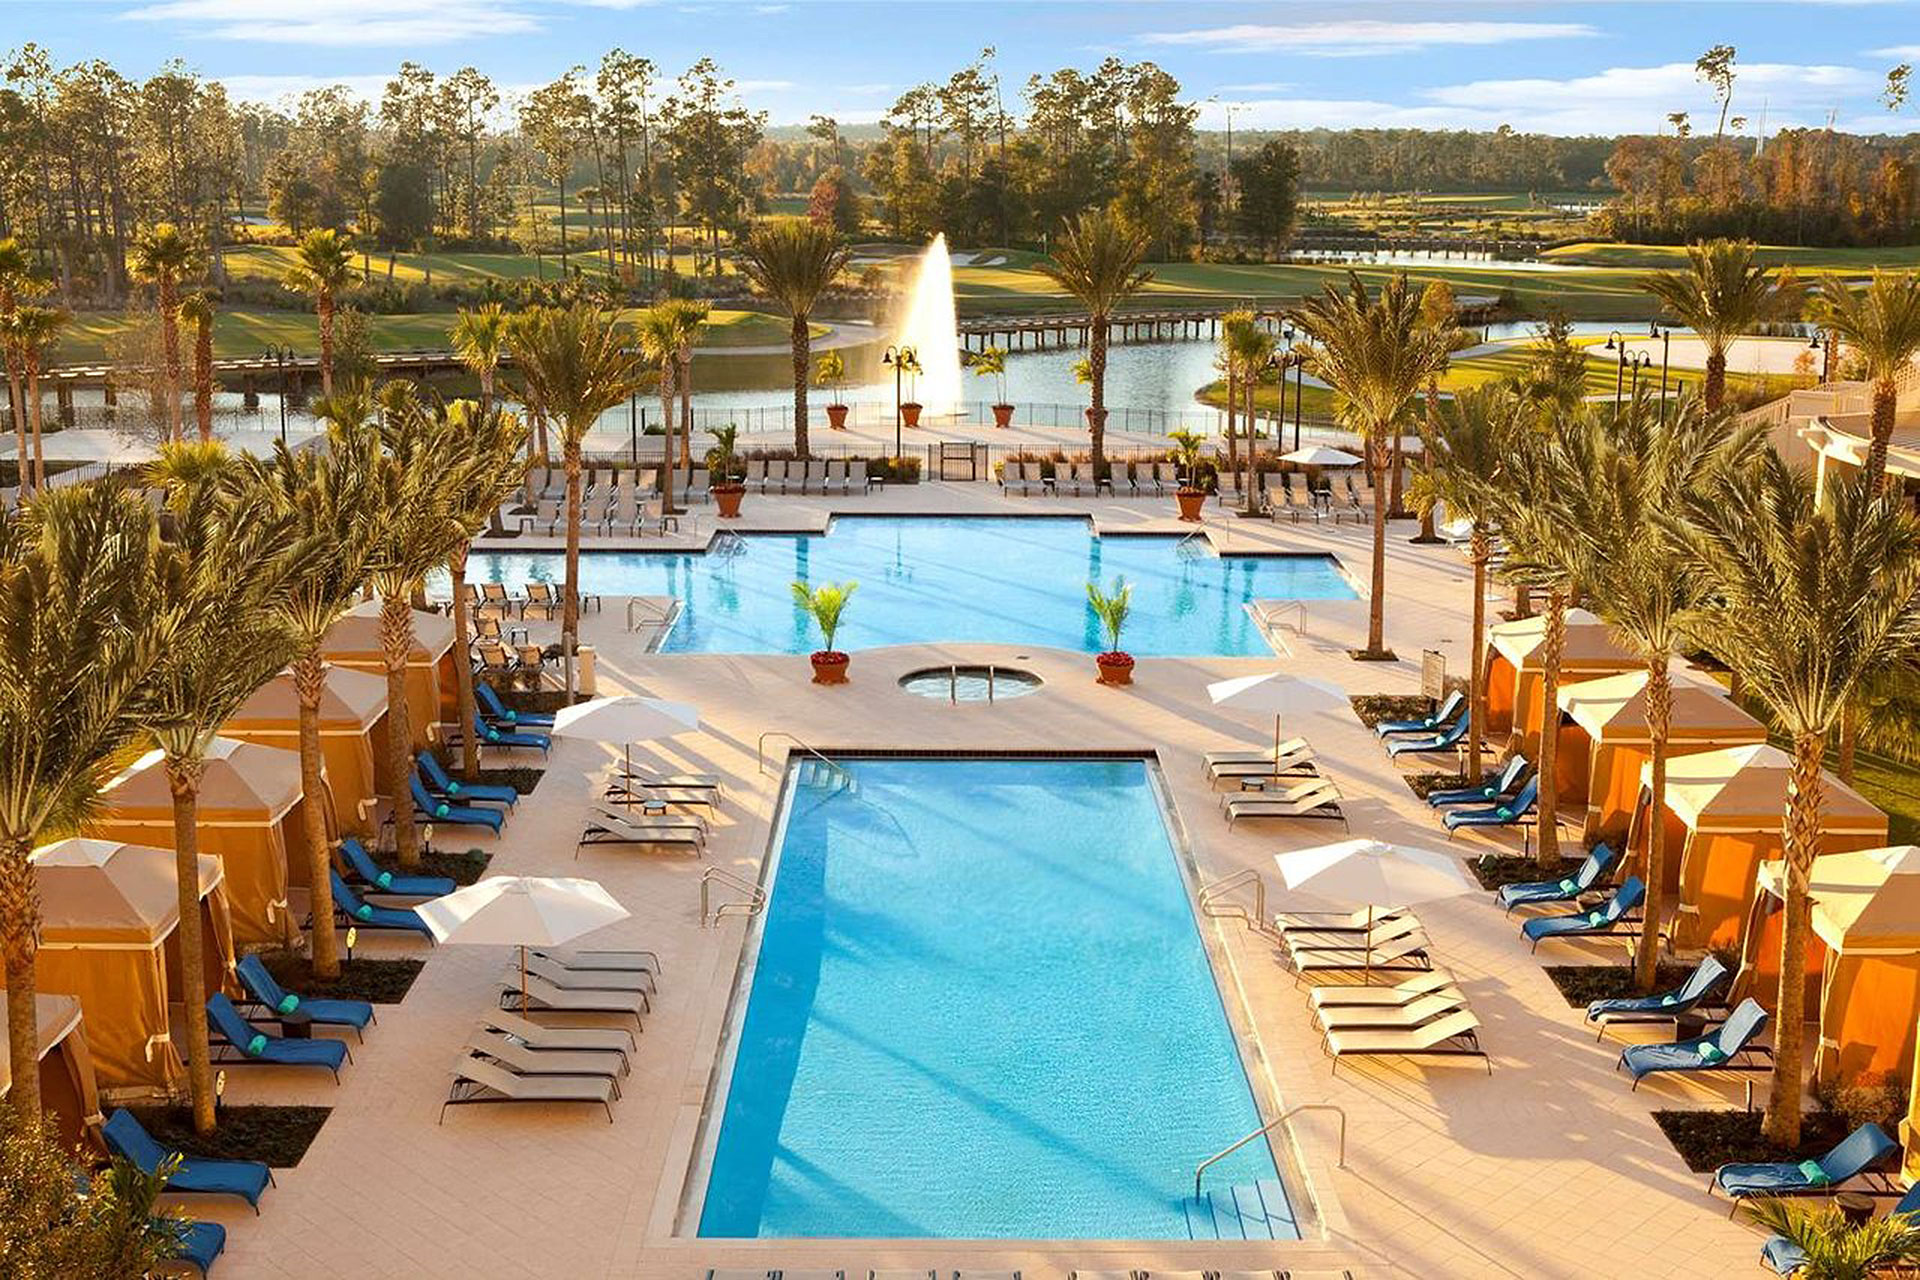 Aerial View of Waldorf Astoria Orlando; Courtesy of Waldorf Astoria Orlando